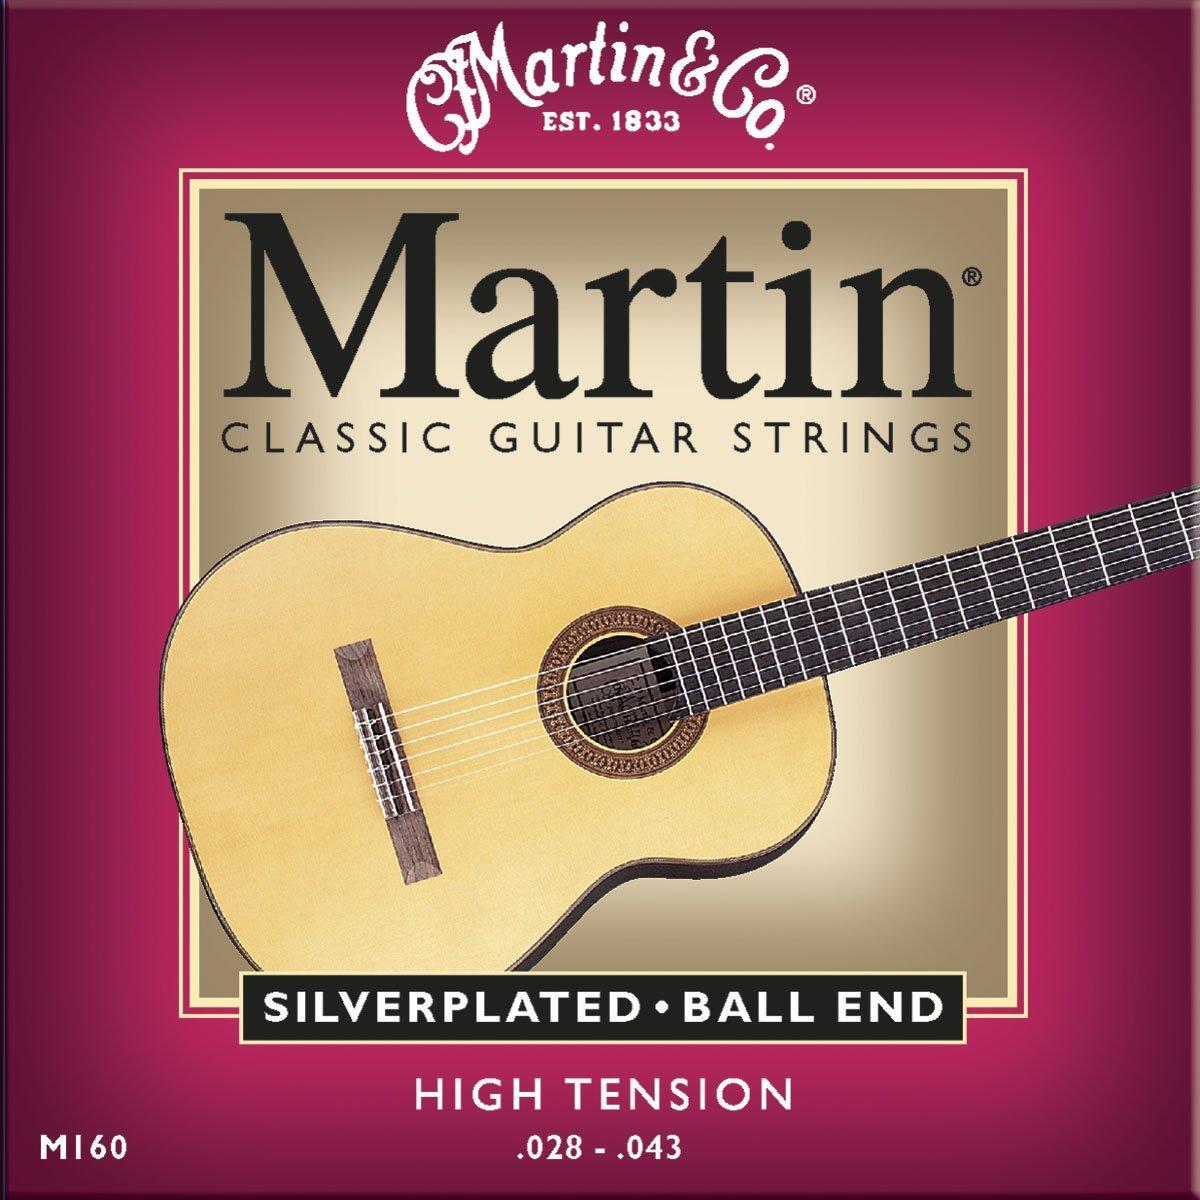 Martin M160 Silverplated Ball End Classical Guitar Strings, High Tension